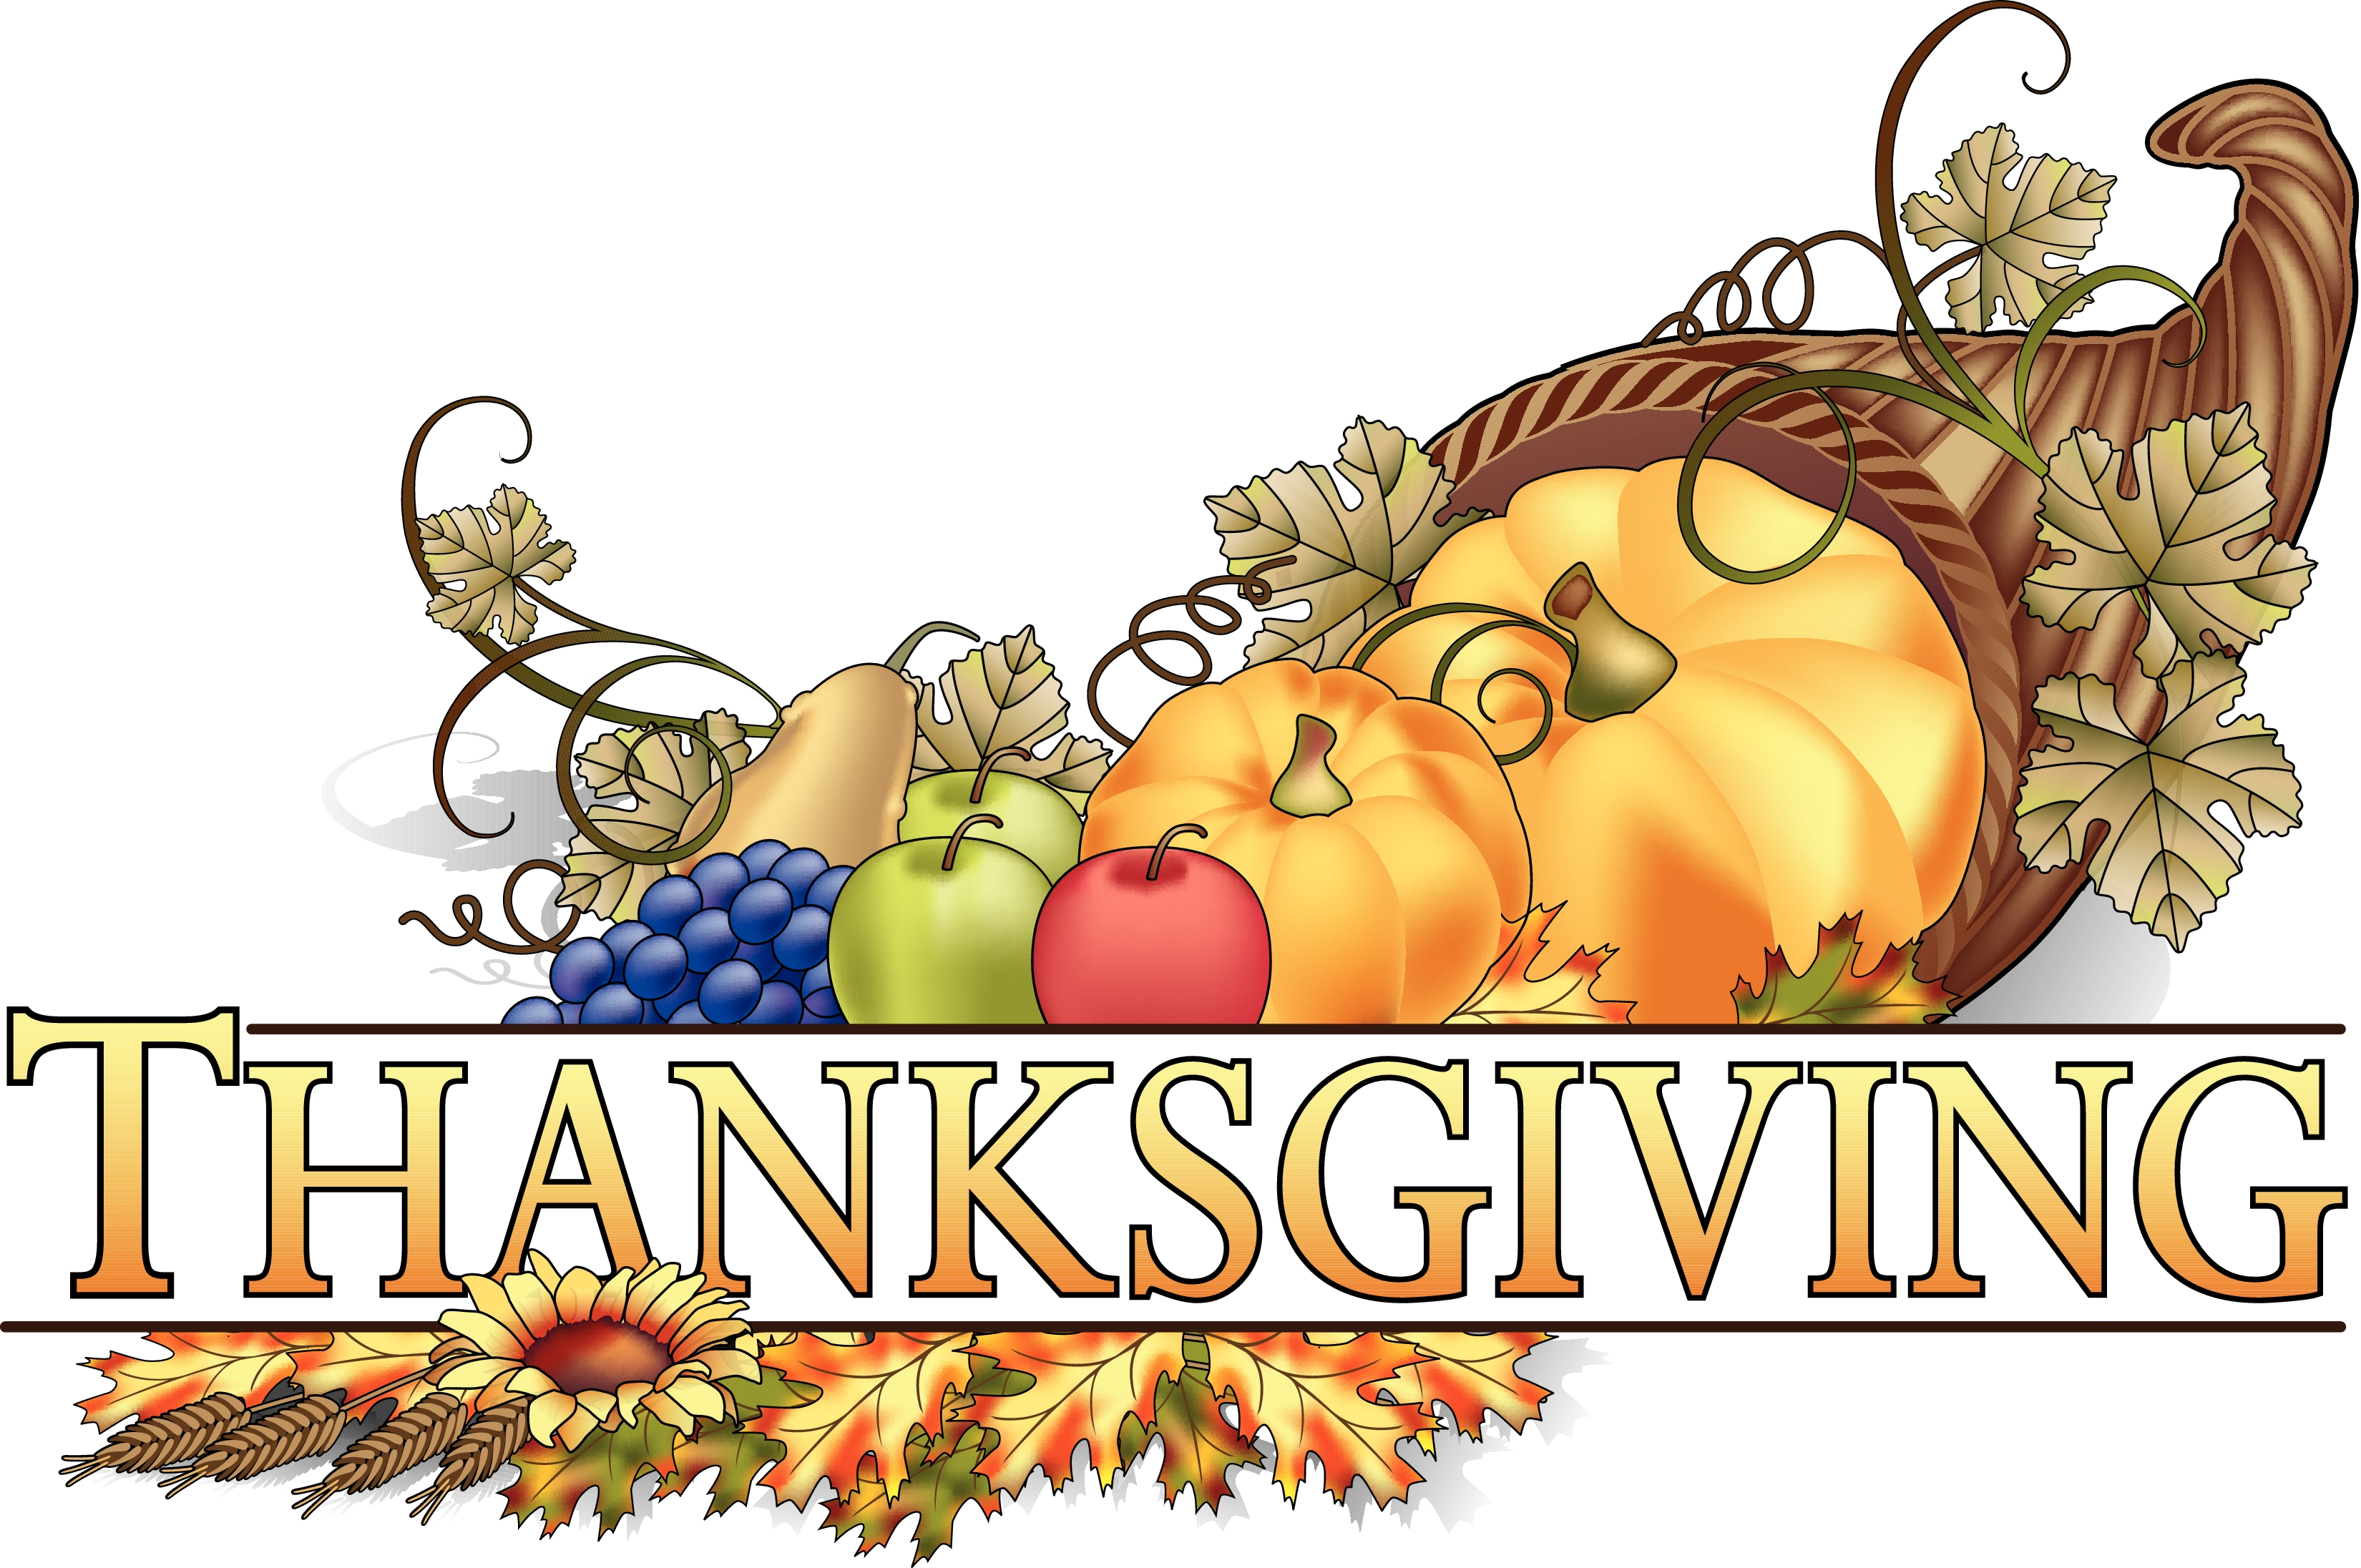 Thanksgiving Cornucopia Wordart